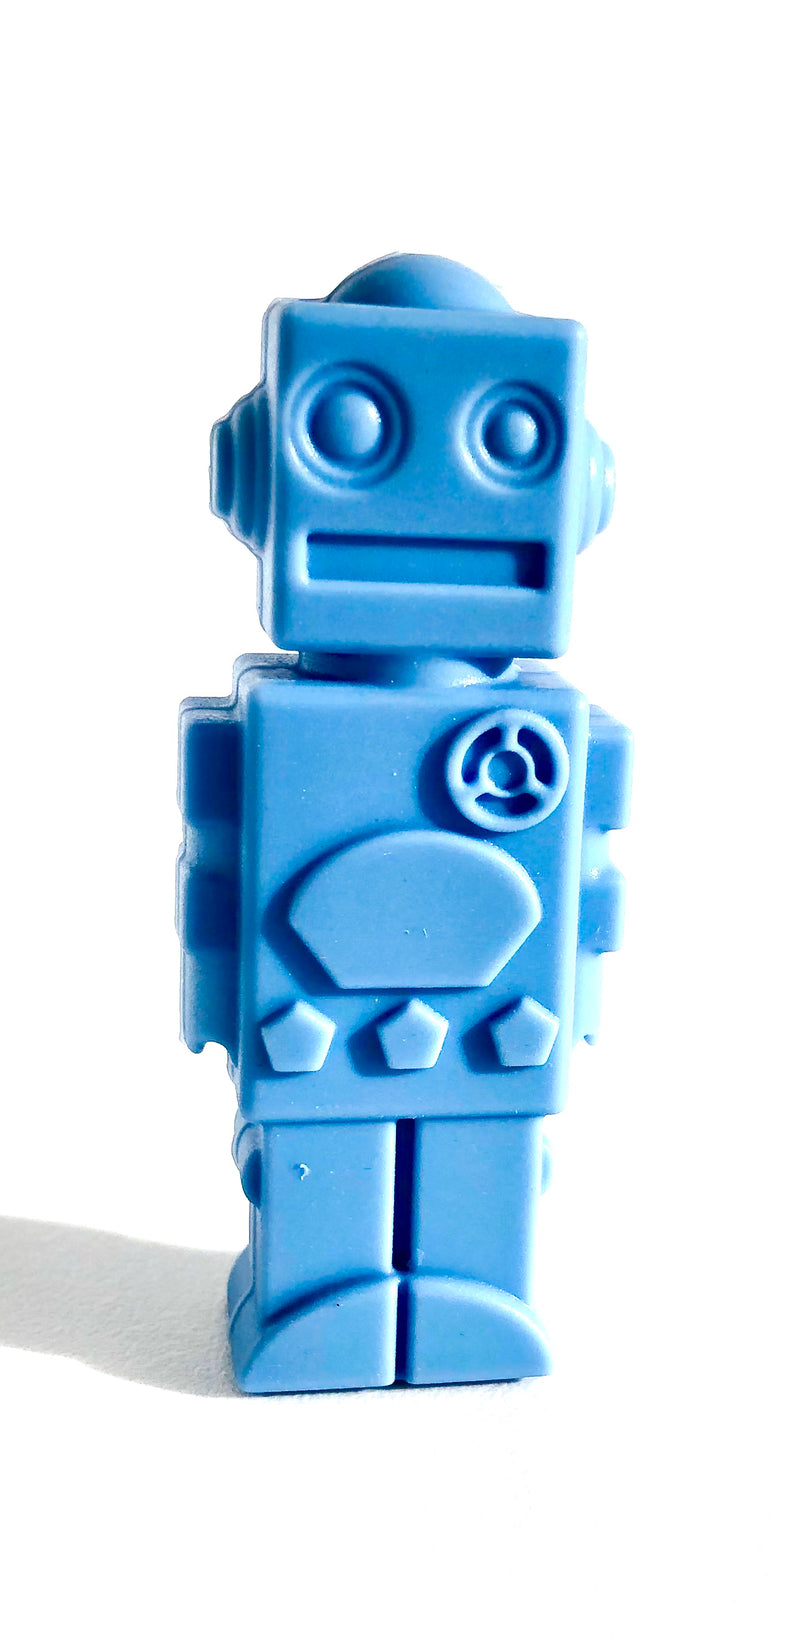 Robot Chewable Pencil Toppers (Set 3)